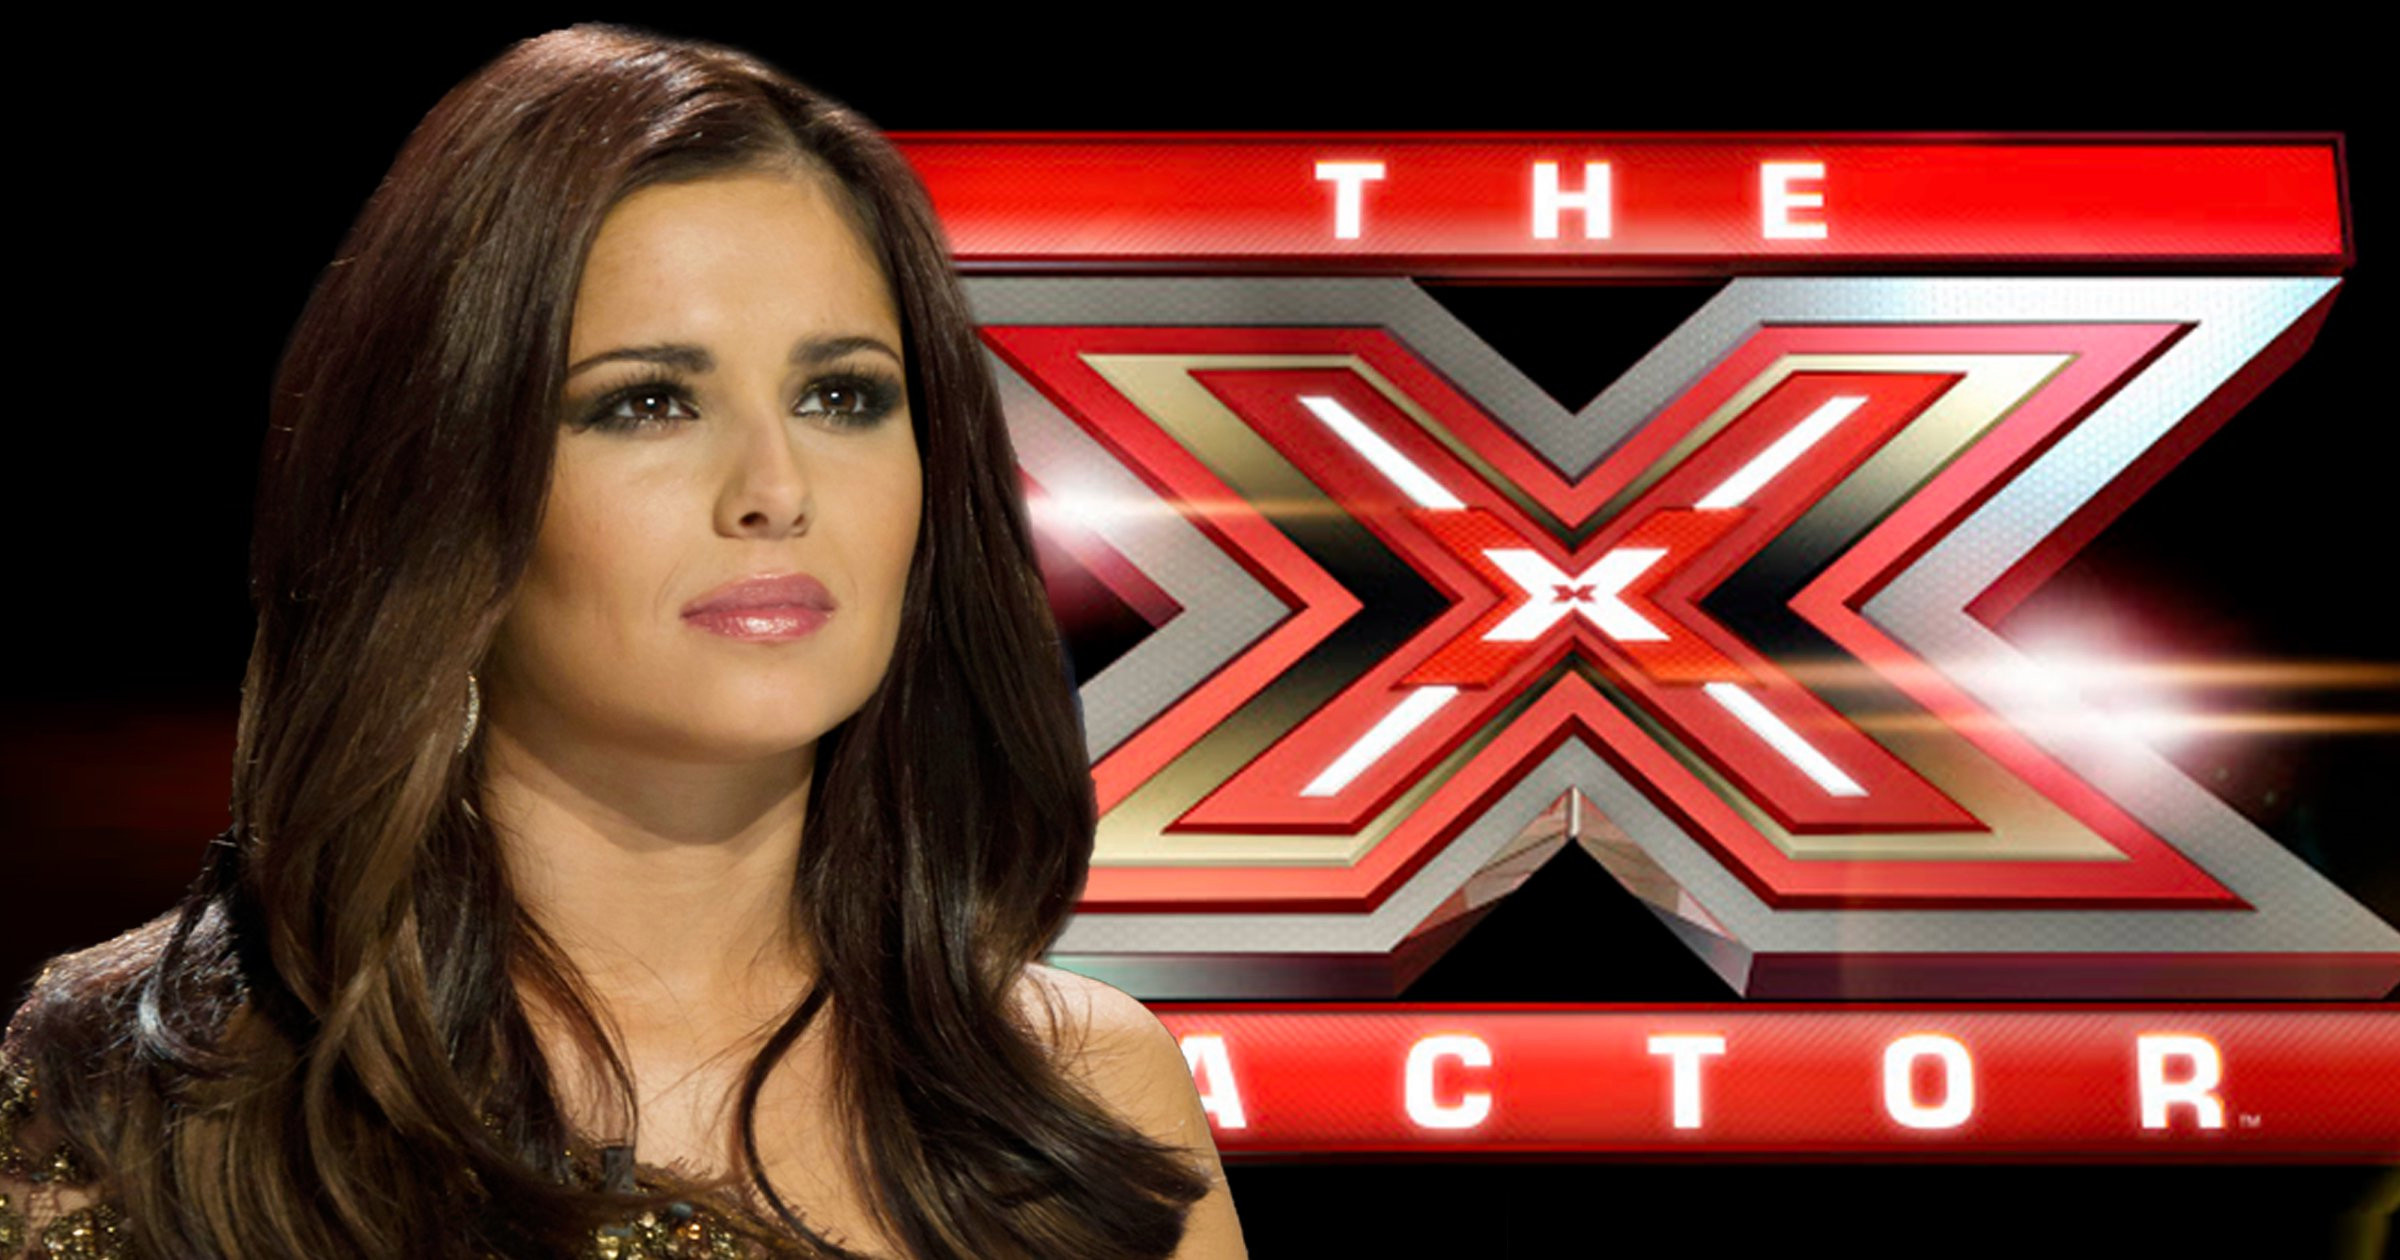 Will Cheryl return to X Factor? Singer 'in line for return to judges' panel in 2022 comeback'